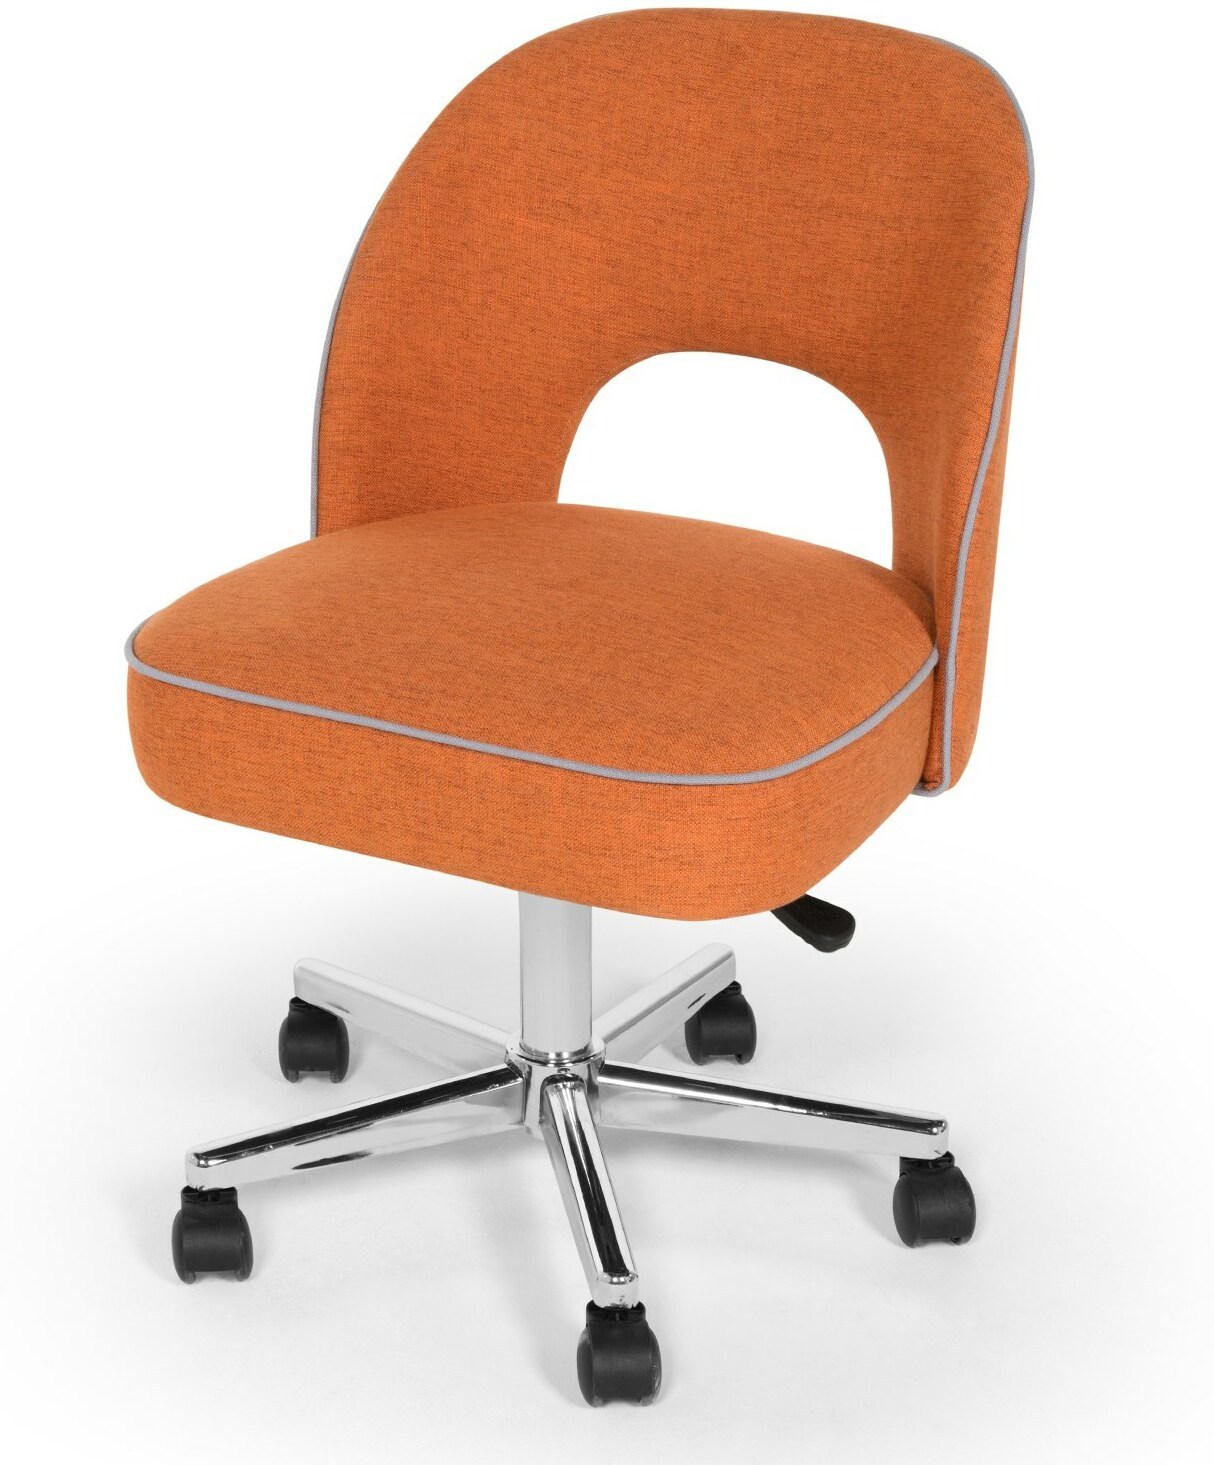 Lloyd Office Chair, Marigold Orange and Persian Grey